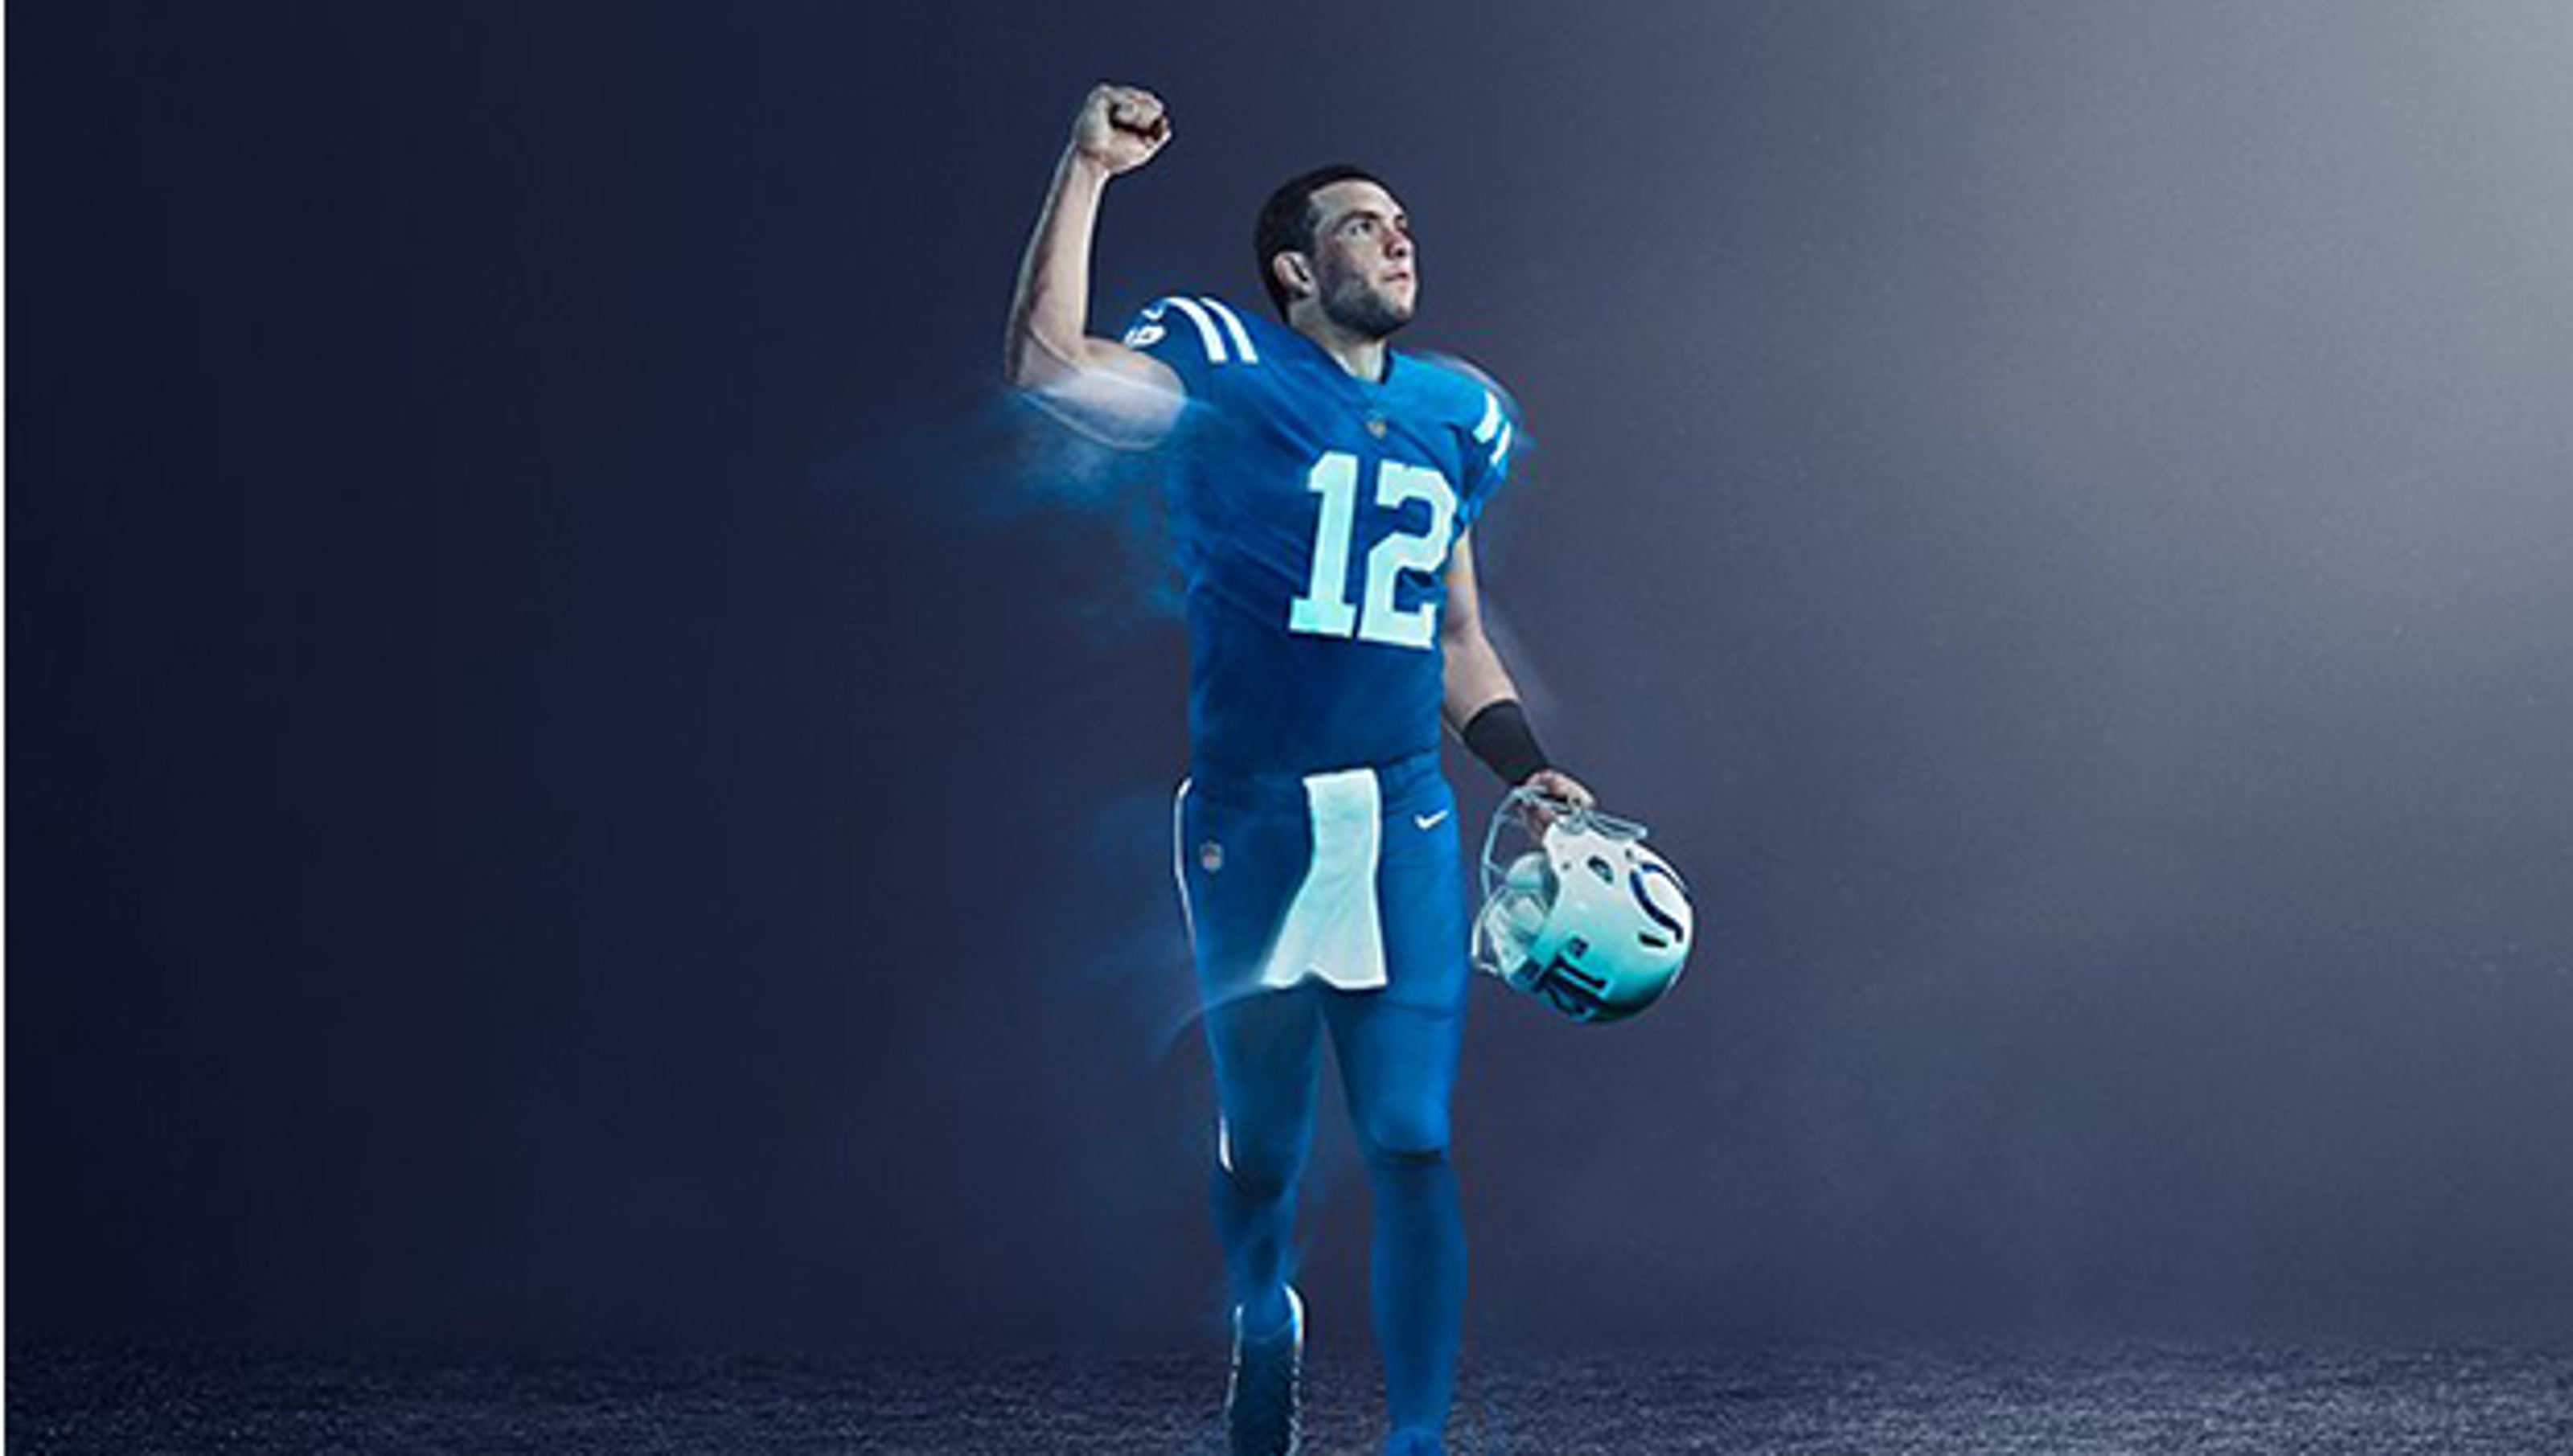 636322827607950561-colorrush.png?width=3